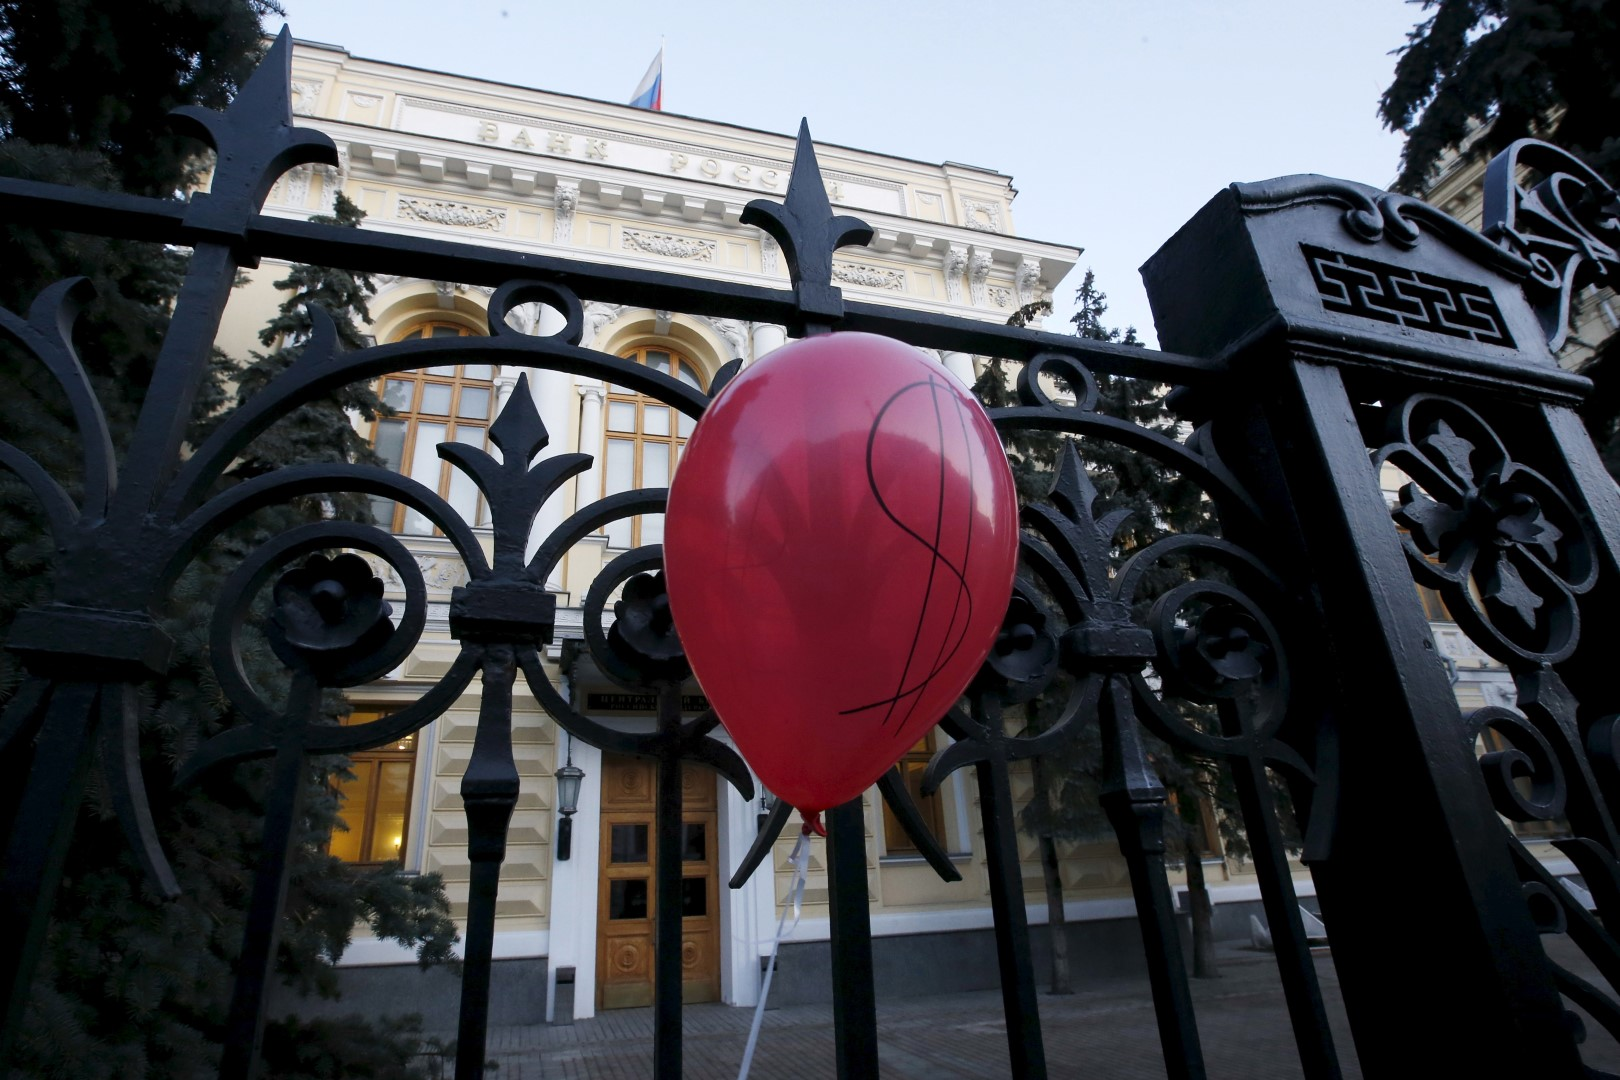 A balloon is seen during a rally of foreign currency mortgage holders near the Central Bank headquarters in central Moscow, Russia, February 8, 2016. REUTERS/Sergei Karpukhin - RTX2601D